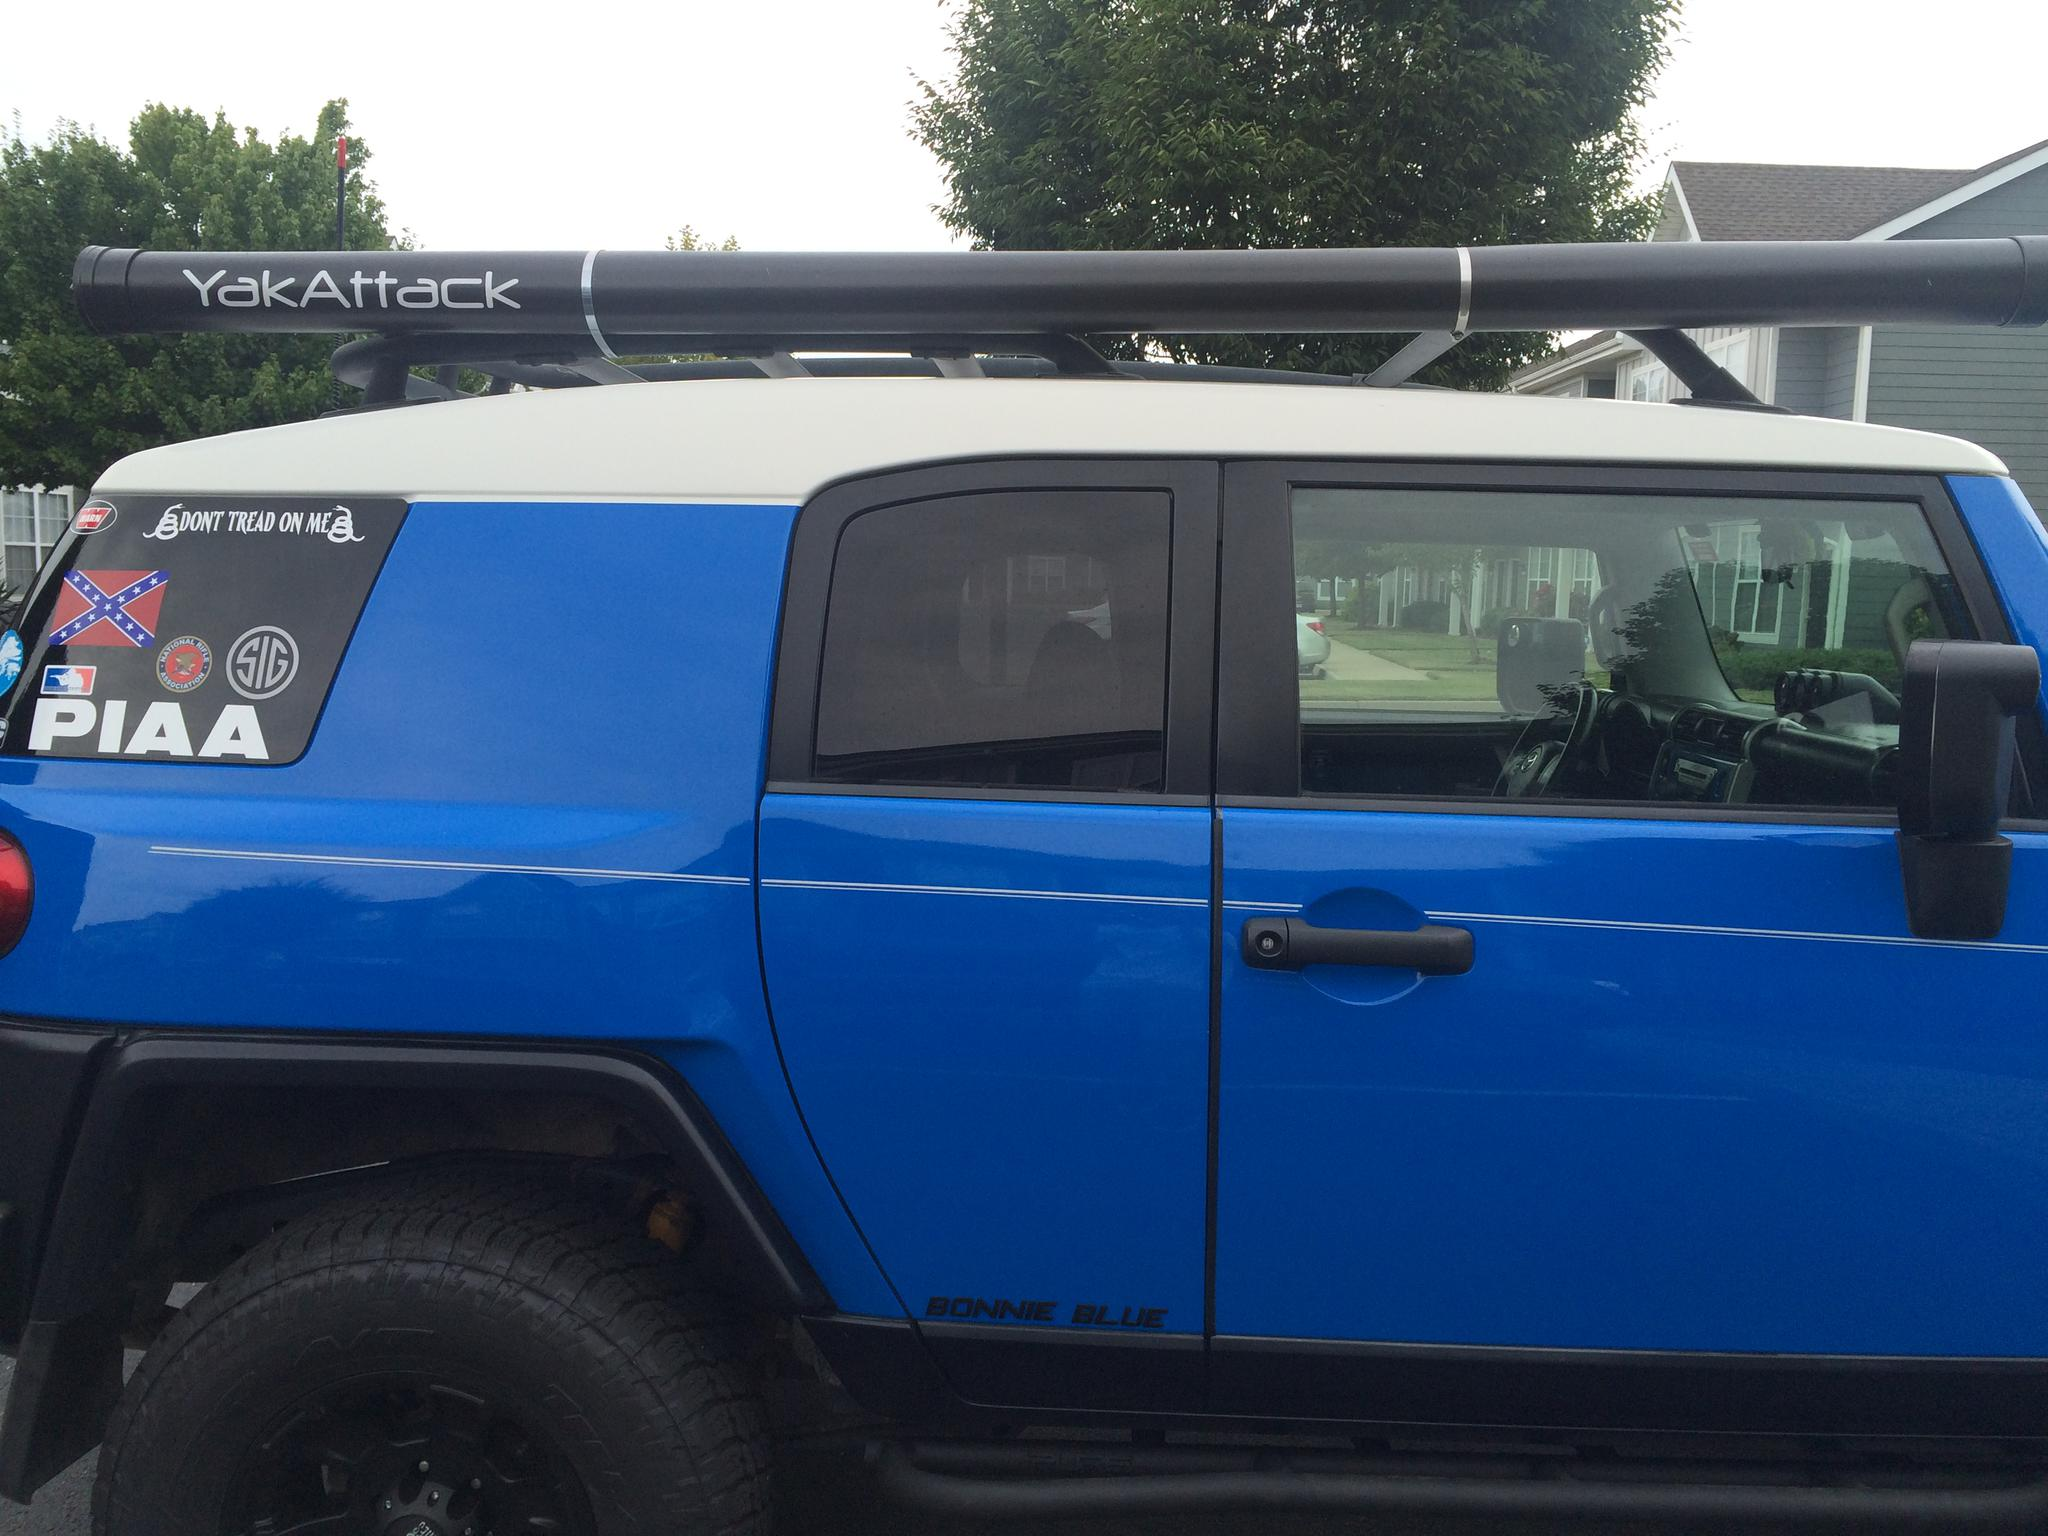 Pvc roof rack rod holder cosmecol for Fishing rod roof rack